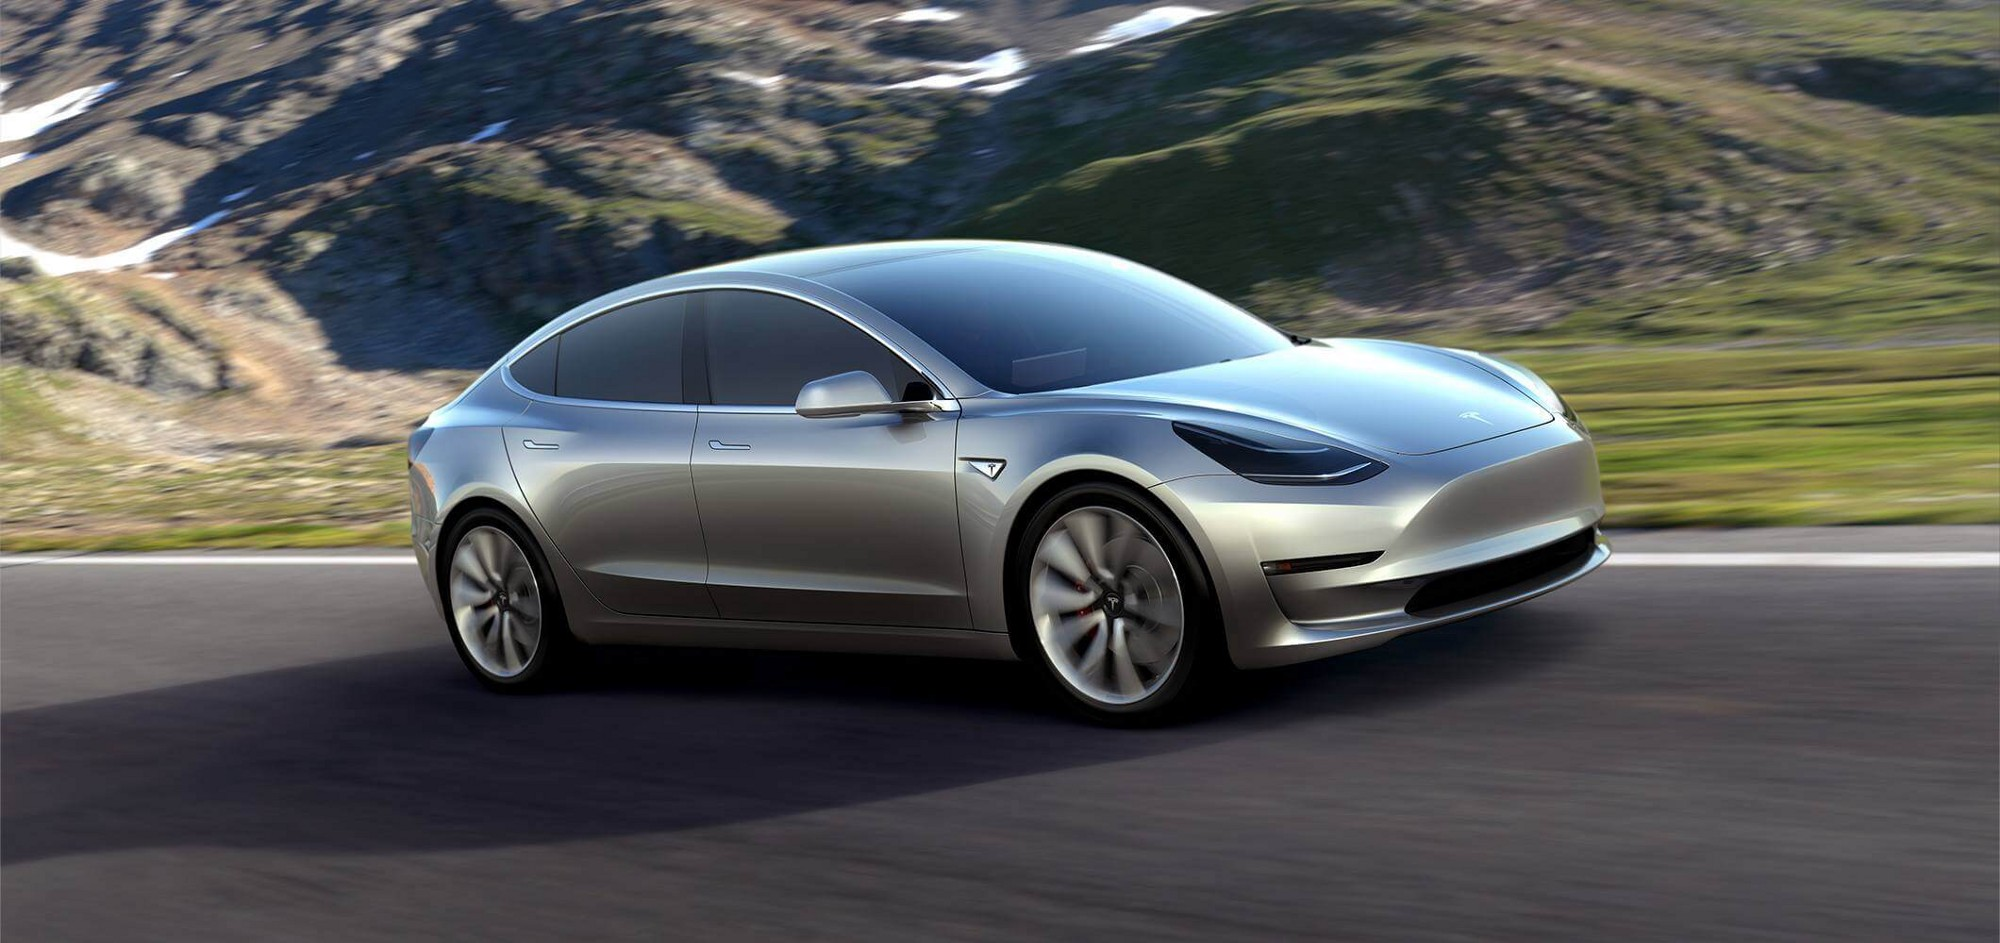 The Tesla Model III Is A Cool Car And Thatu0027s Unrelated To The Fact Itu0027s  Electric